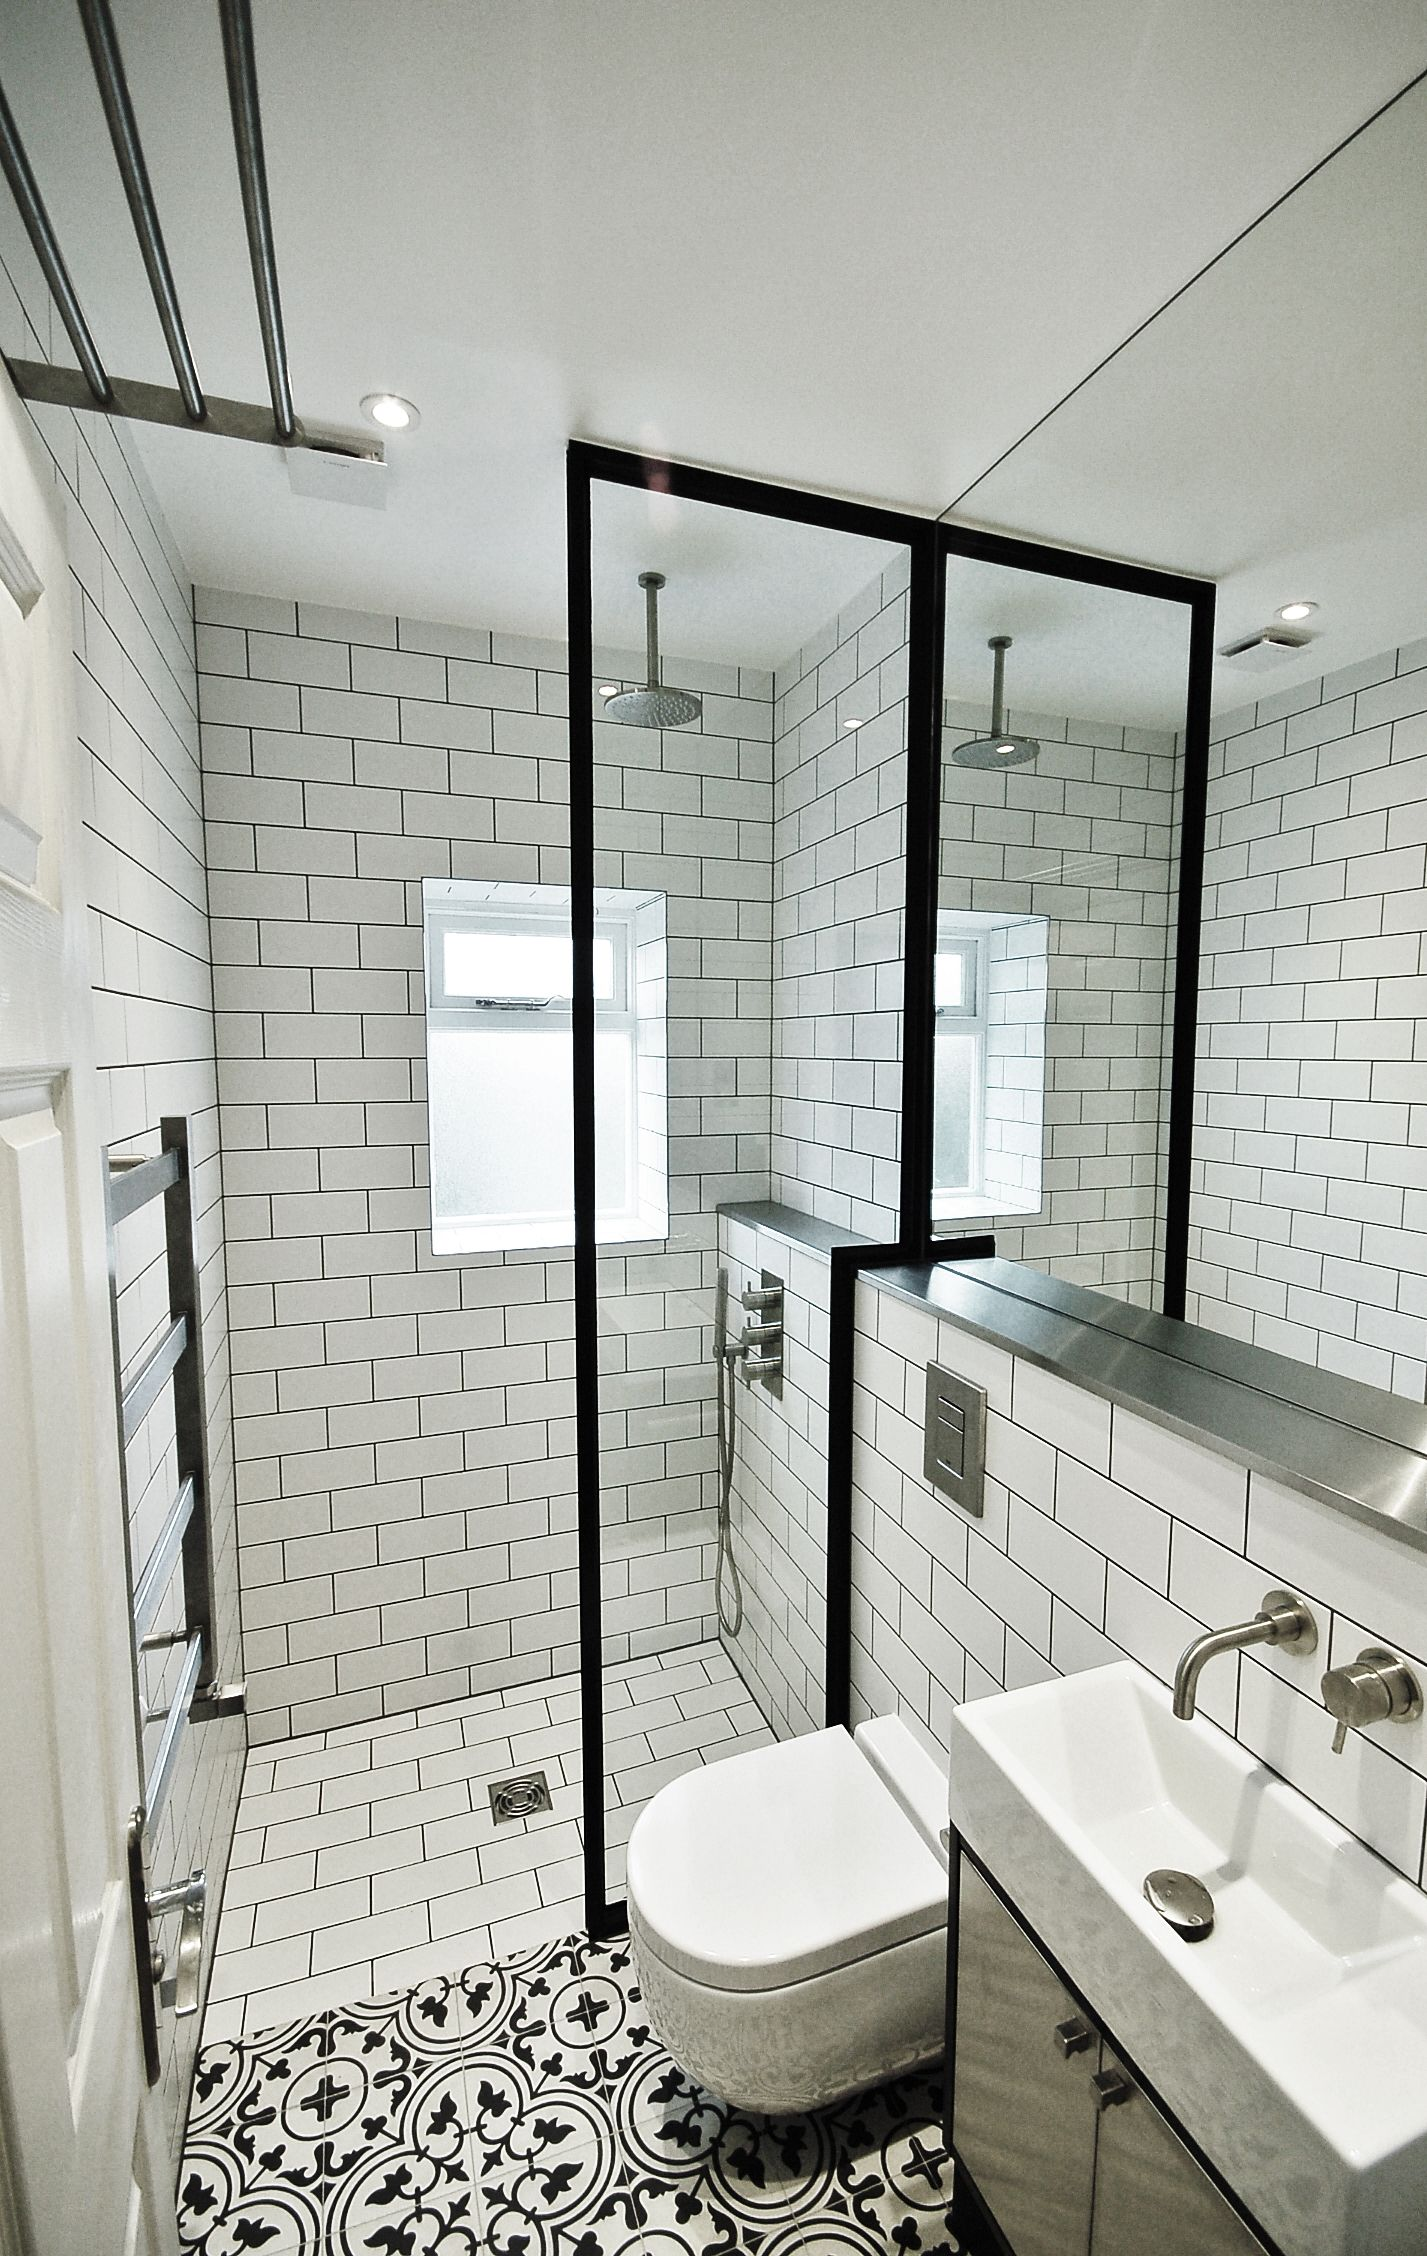 Fekete fehr s jhetne bele a menta tkletes a minimalista love this but the floor tiles in the shower look the same as the wall tiles they would need to be anti slip tiles on the shower floor not smooth ceramic or dailygadgetfo Images